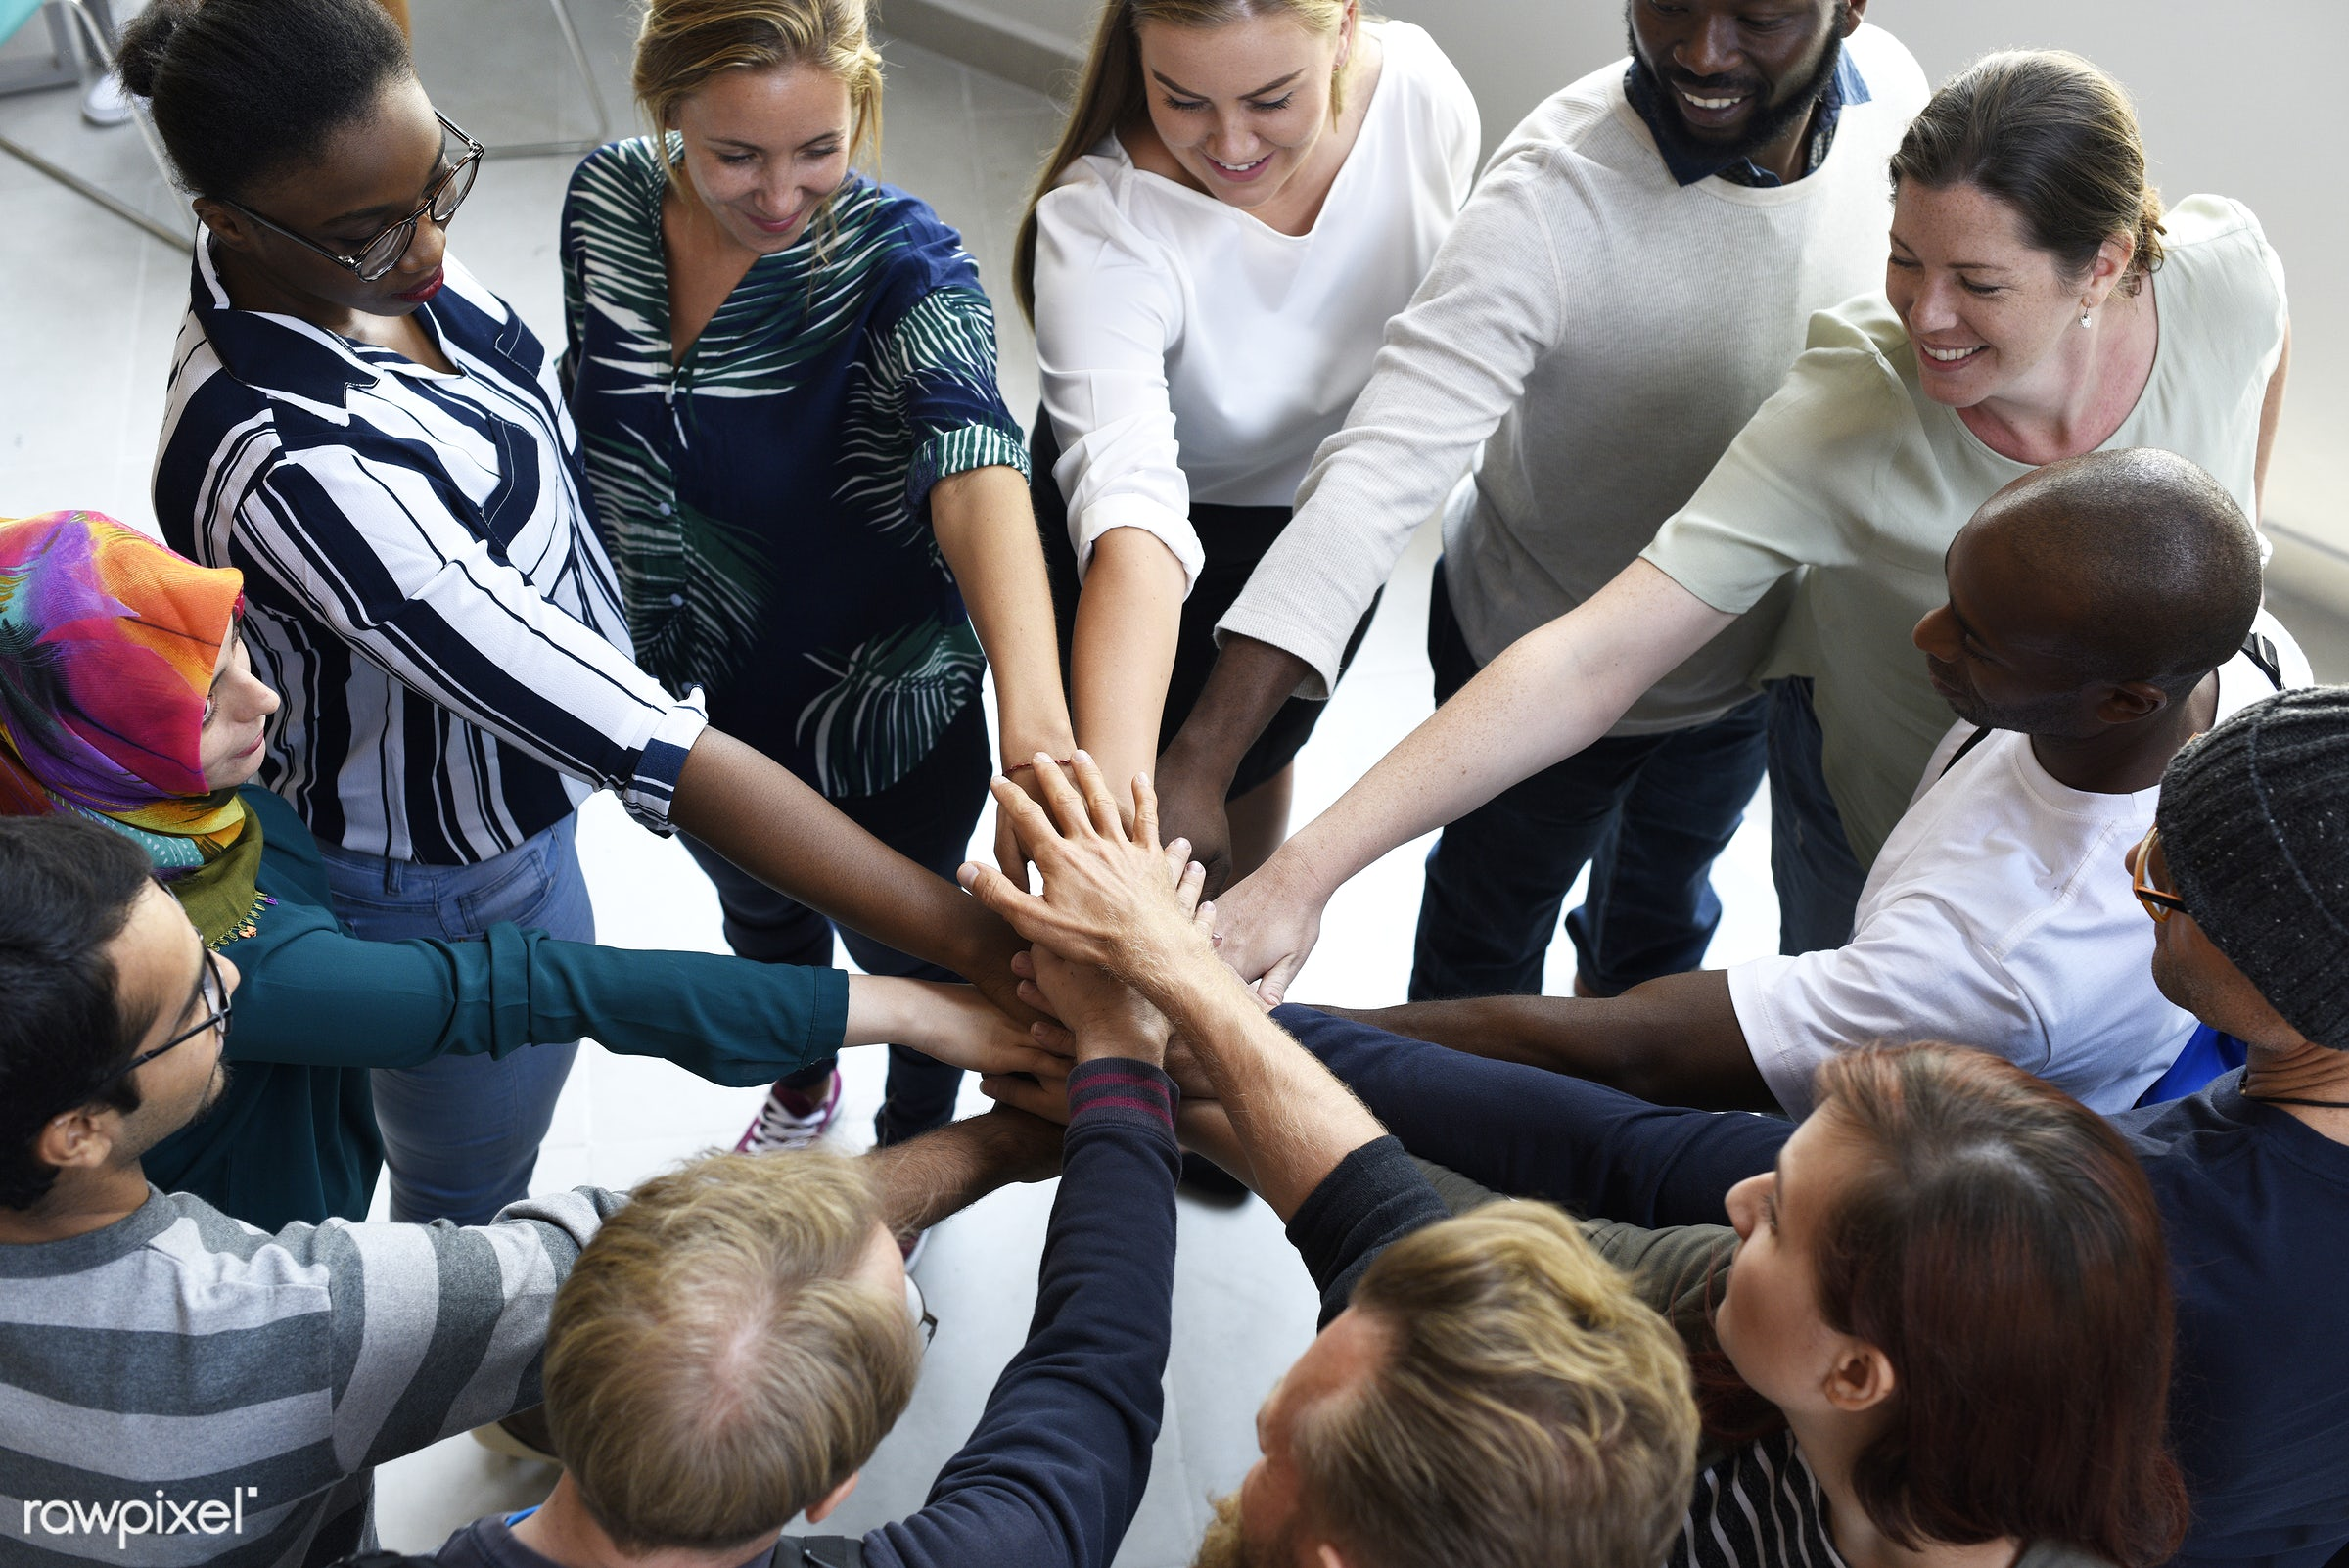 Diversity teamwork with joined hands - performance, african descent, black, brainstorm, business, casual, caucasian,...